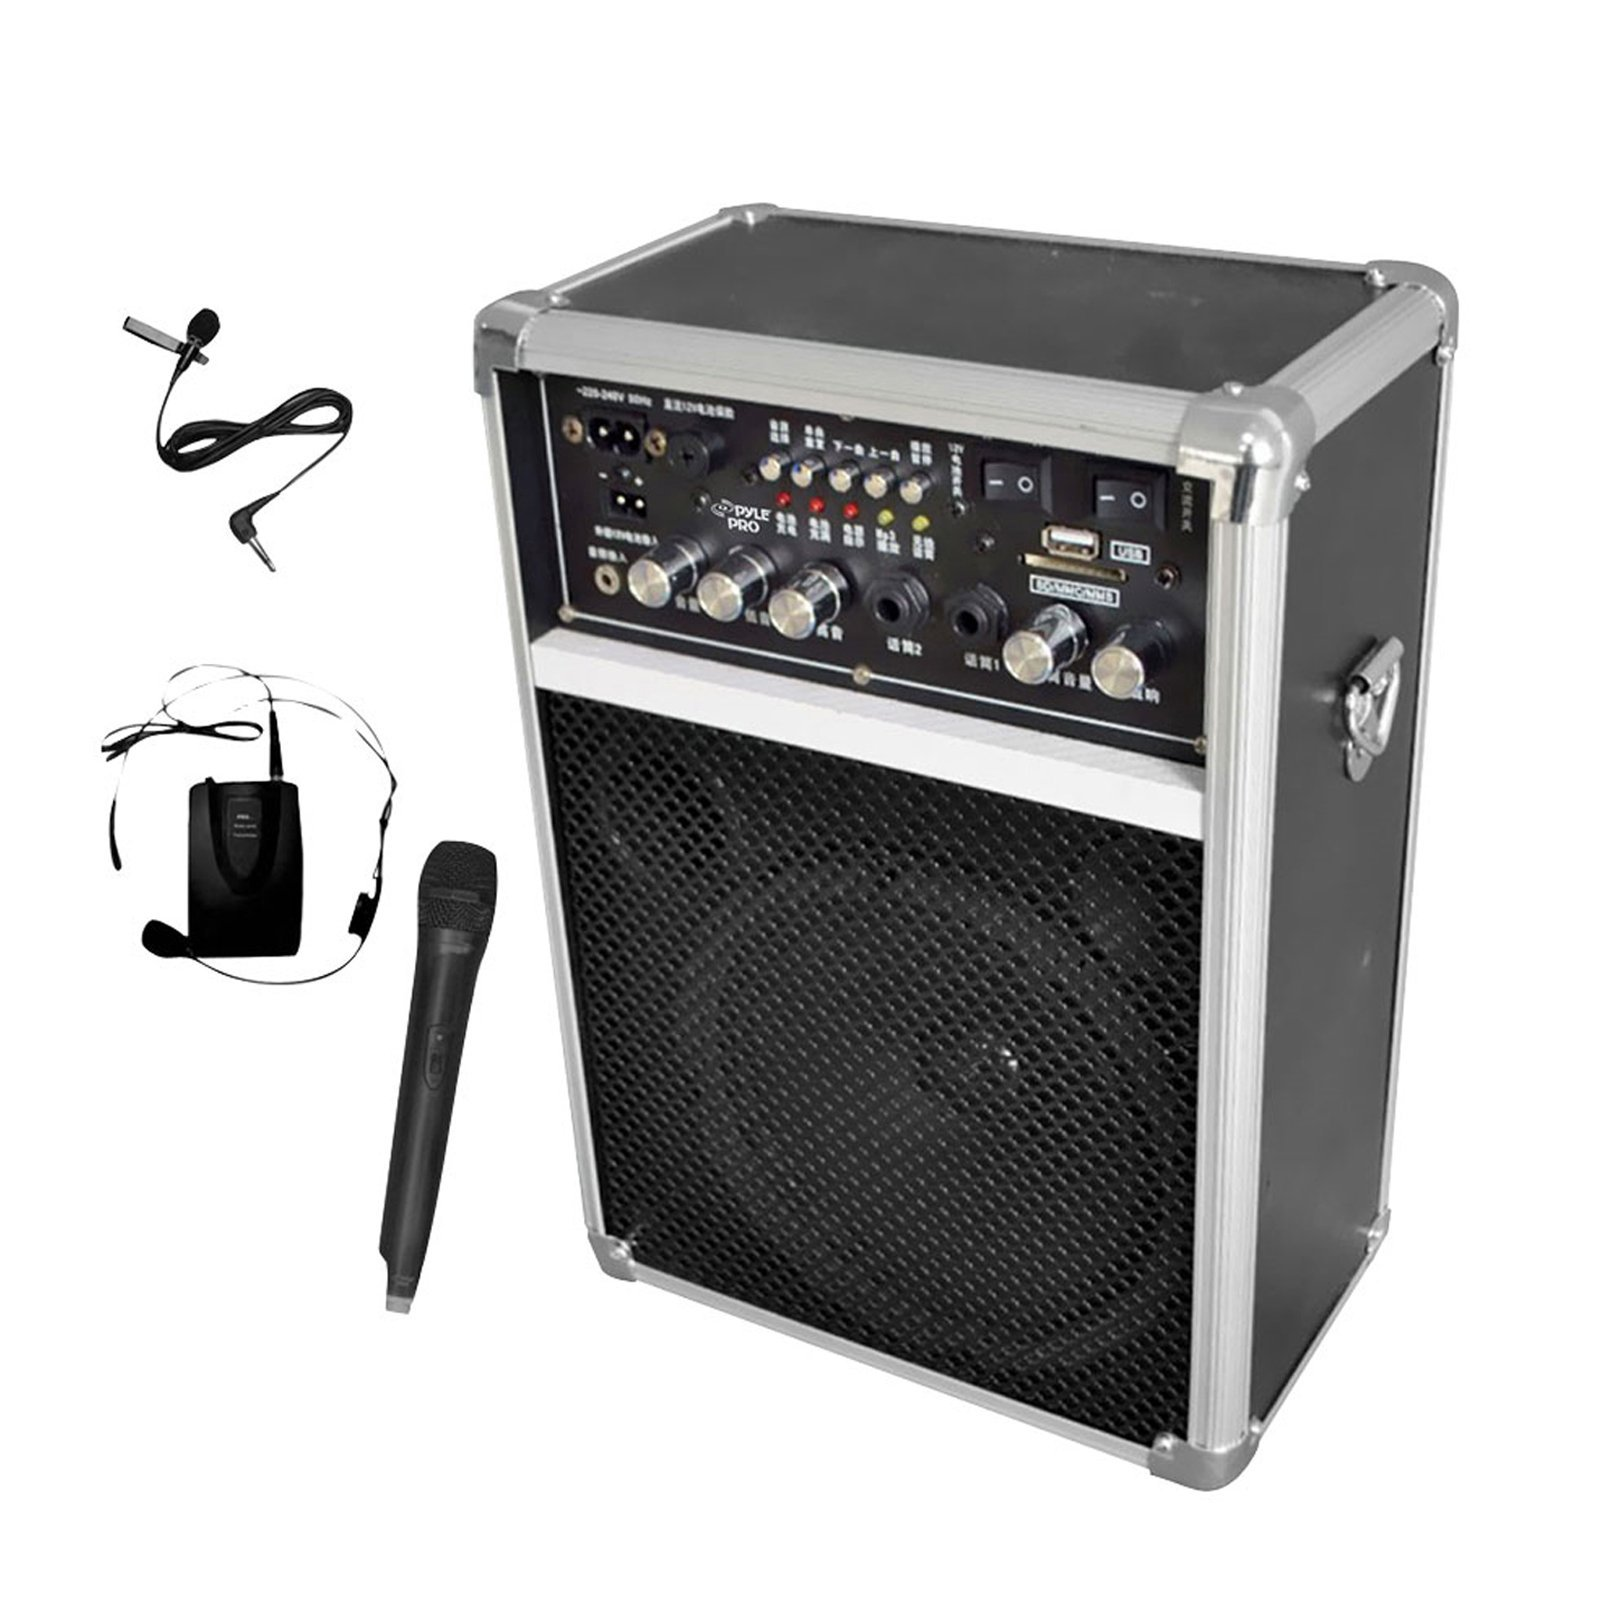 SOUND AROUND-PYLE INDUSTRIES PWMA170 Dual Channel 400 Watt Wireless PA System with USB-SD-MP3 2 VHF Wireless Microphones